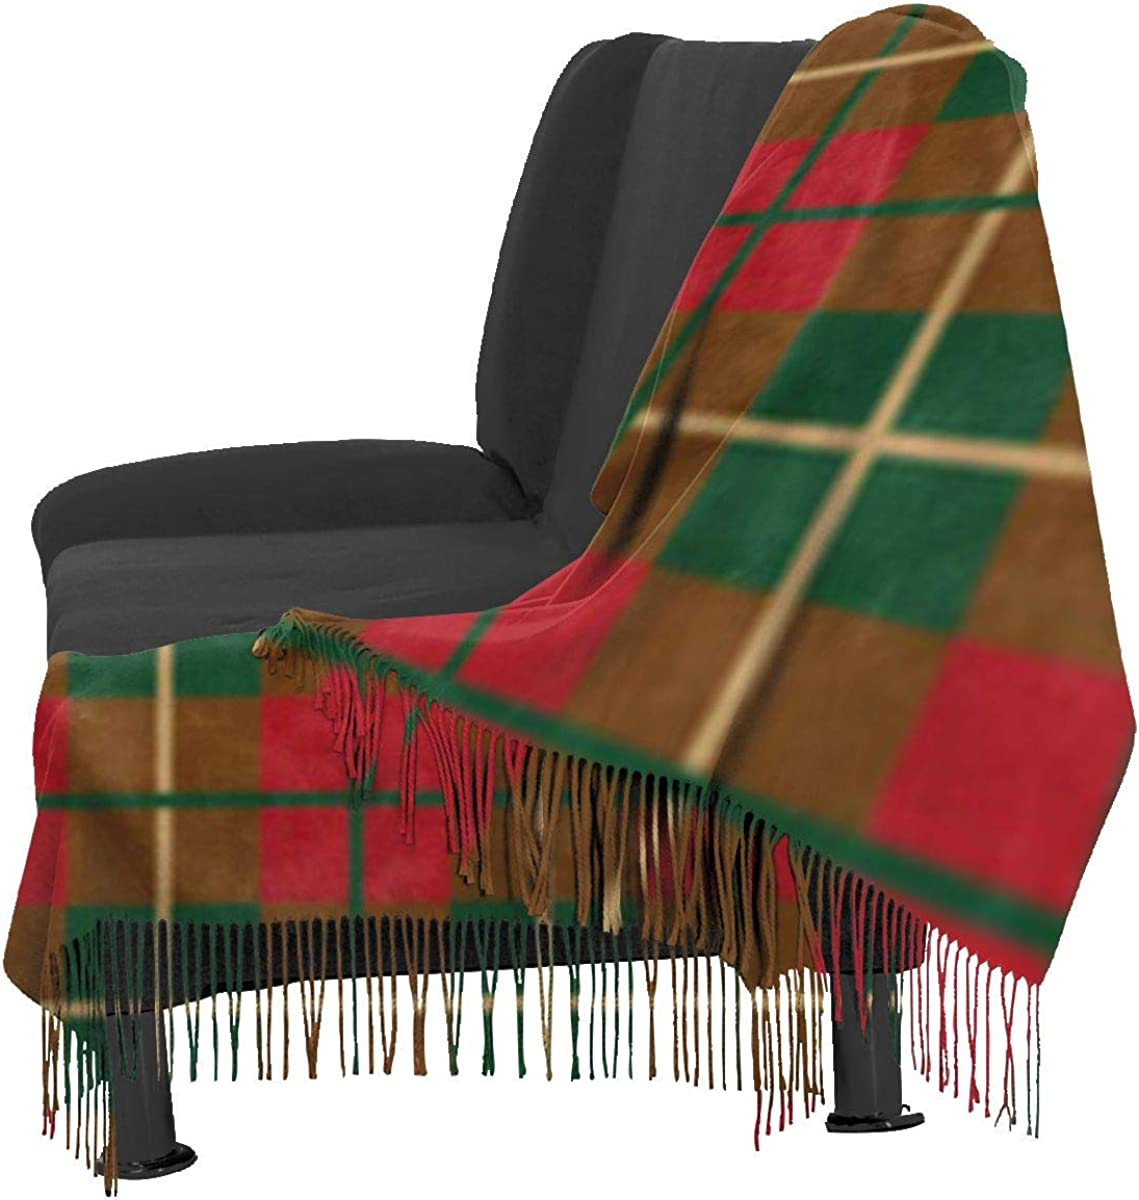 Soft Cashmere Scarf For Women Brown Abstract Scottish Plaid Pattern Green Argyle Arts Beauty Checked Fashion Lady Shawls,Comfortable Warm Winter Scarfs